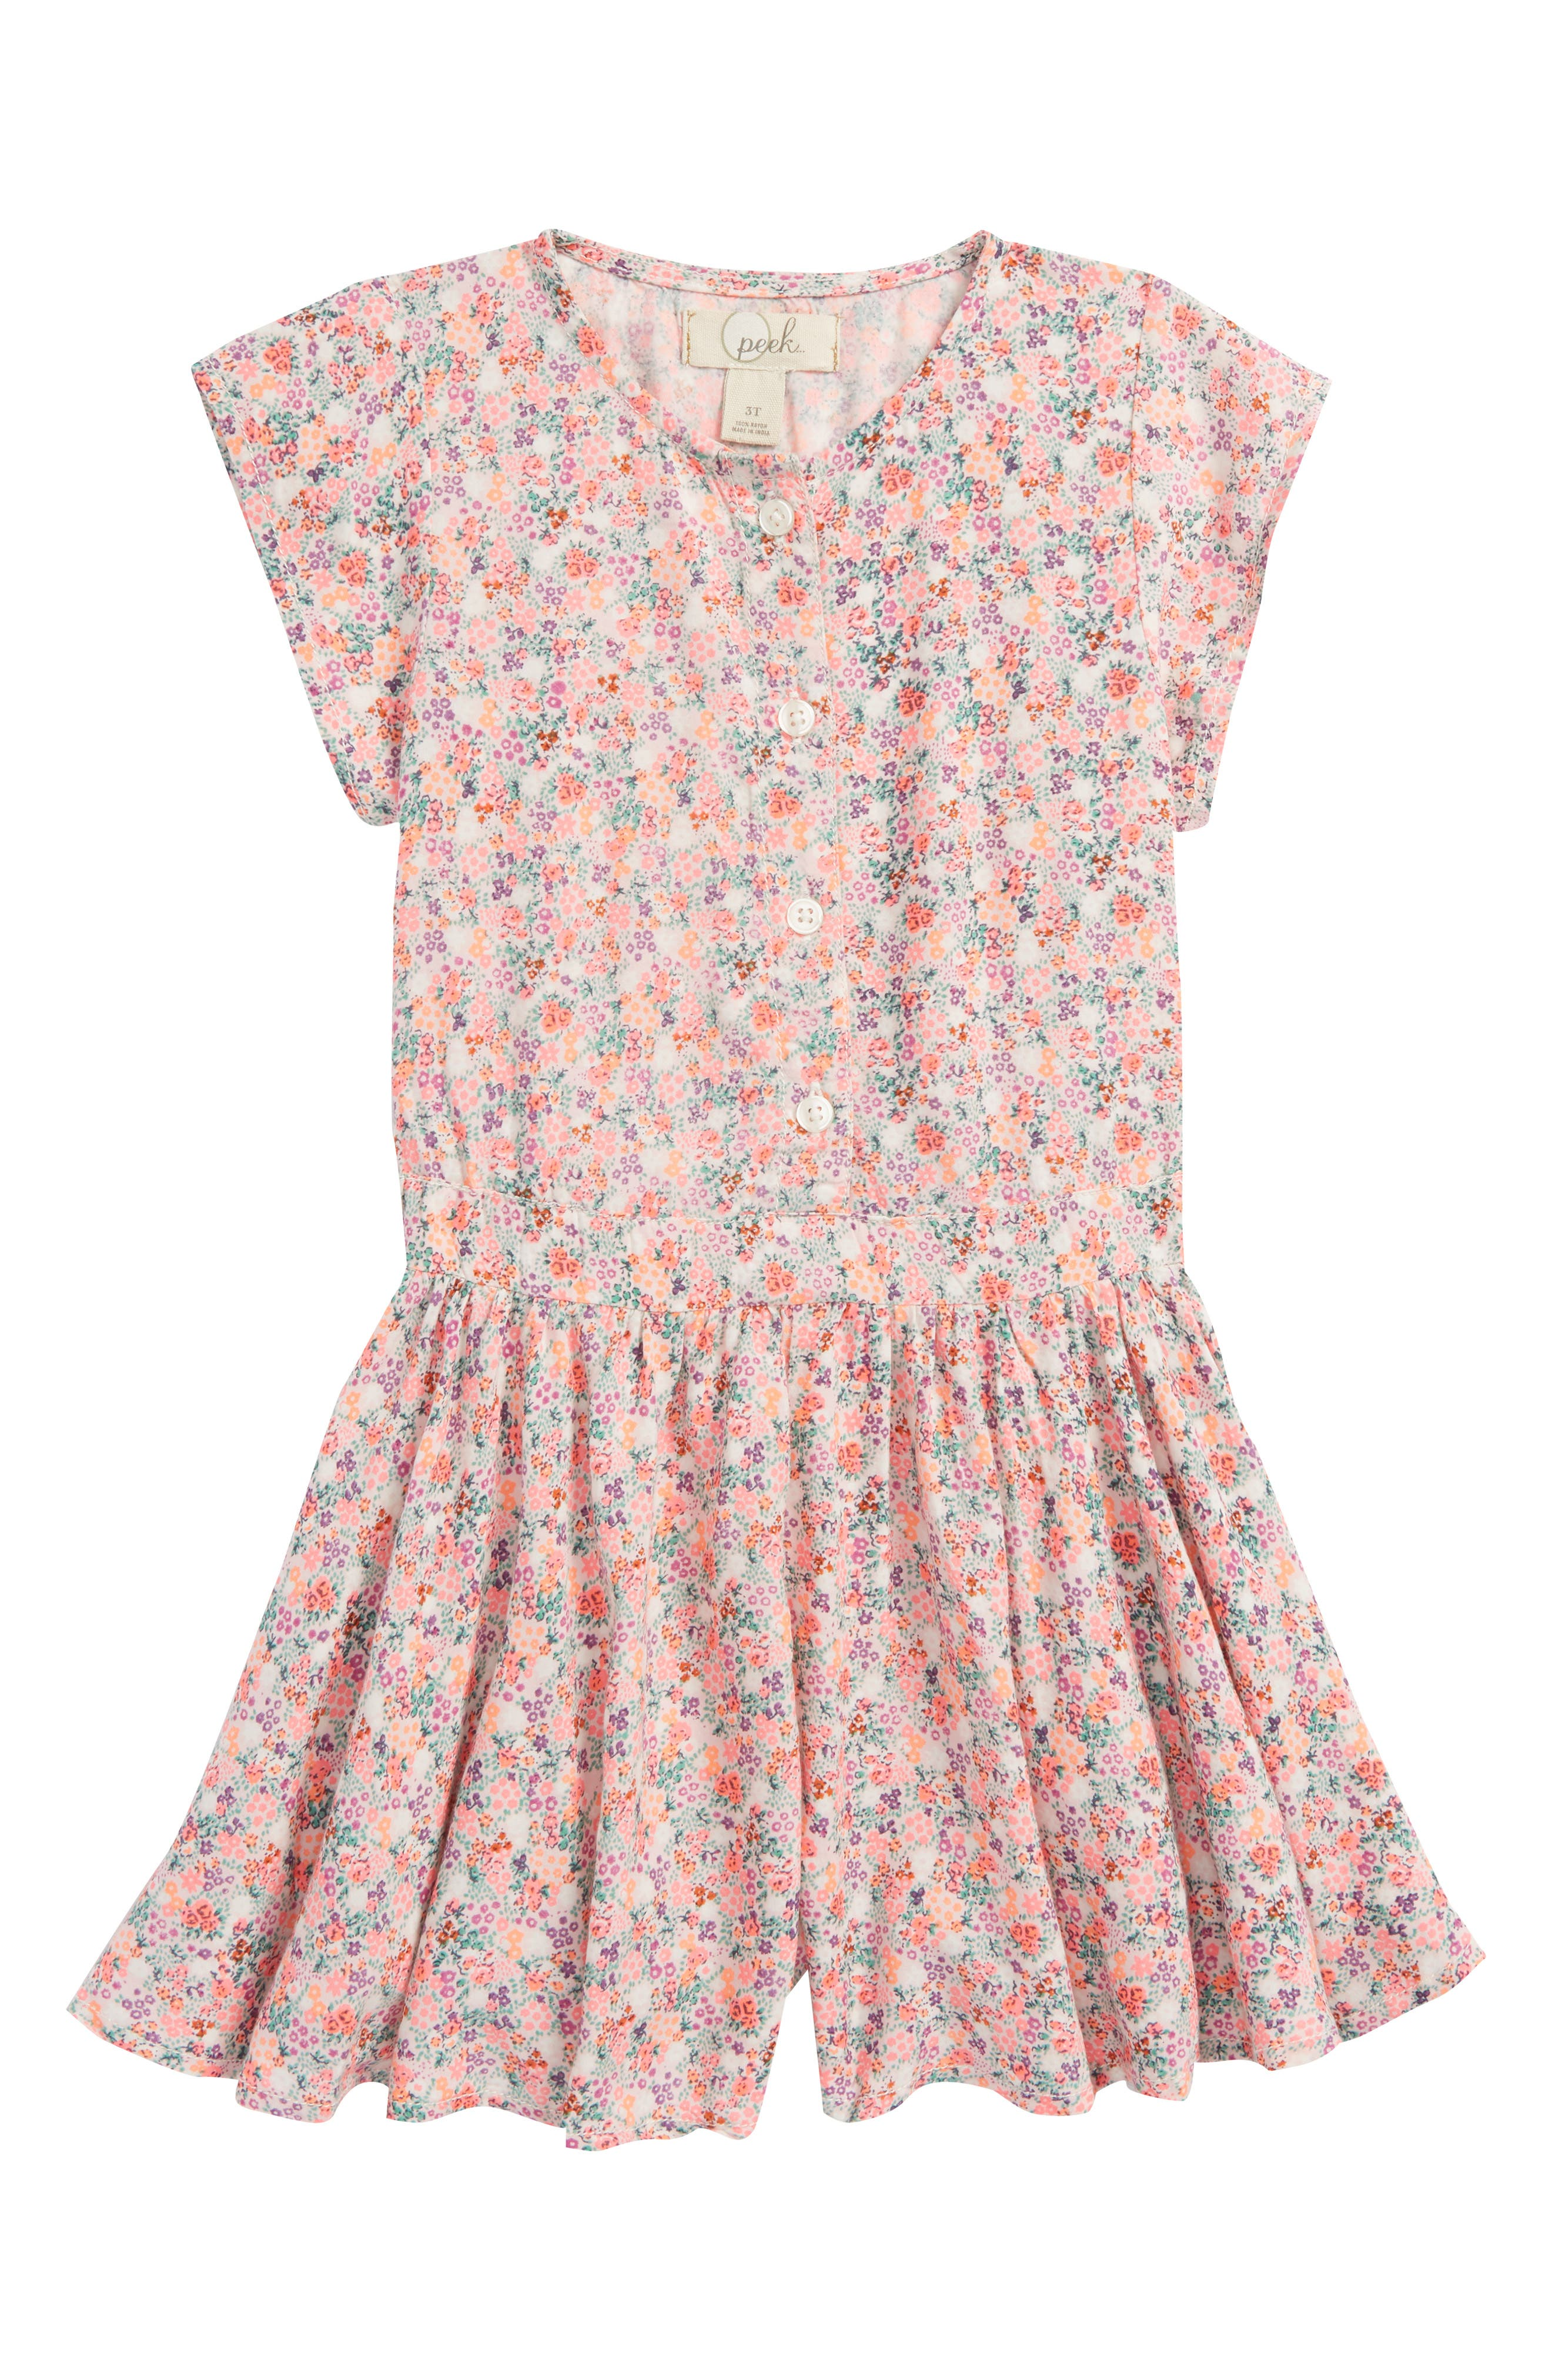 Peek Lenora Floral Romper,                             Main thumbnail 1, color,                             950